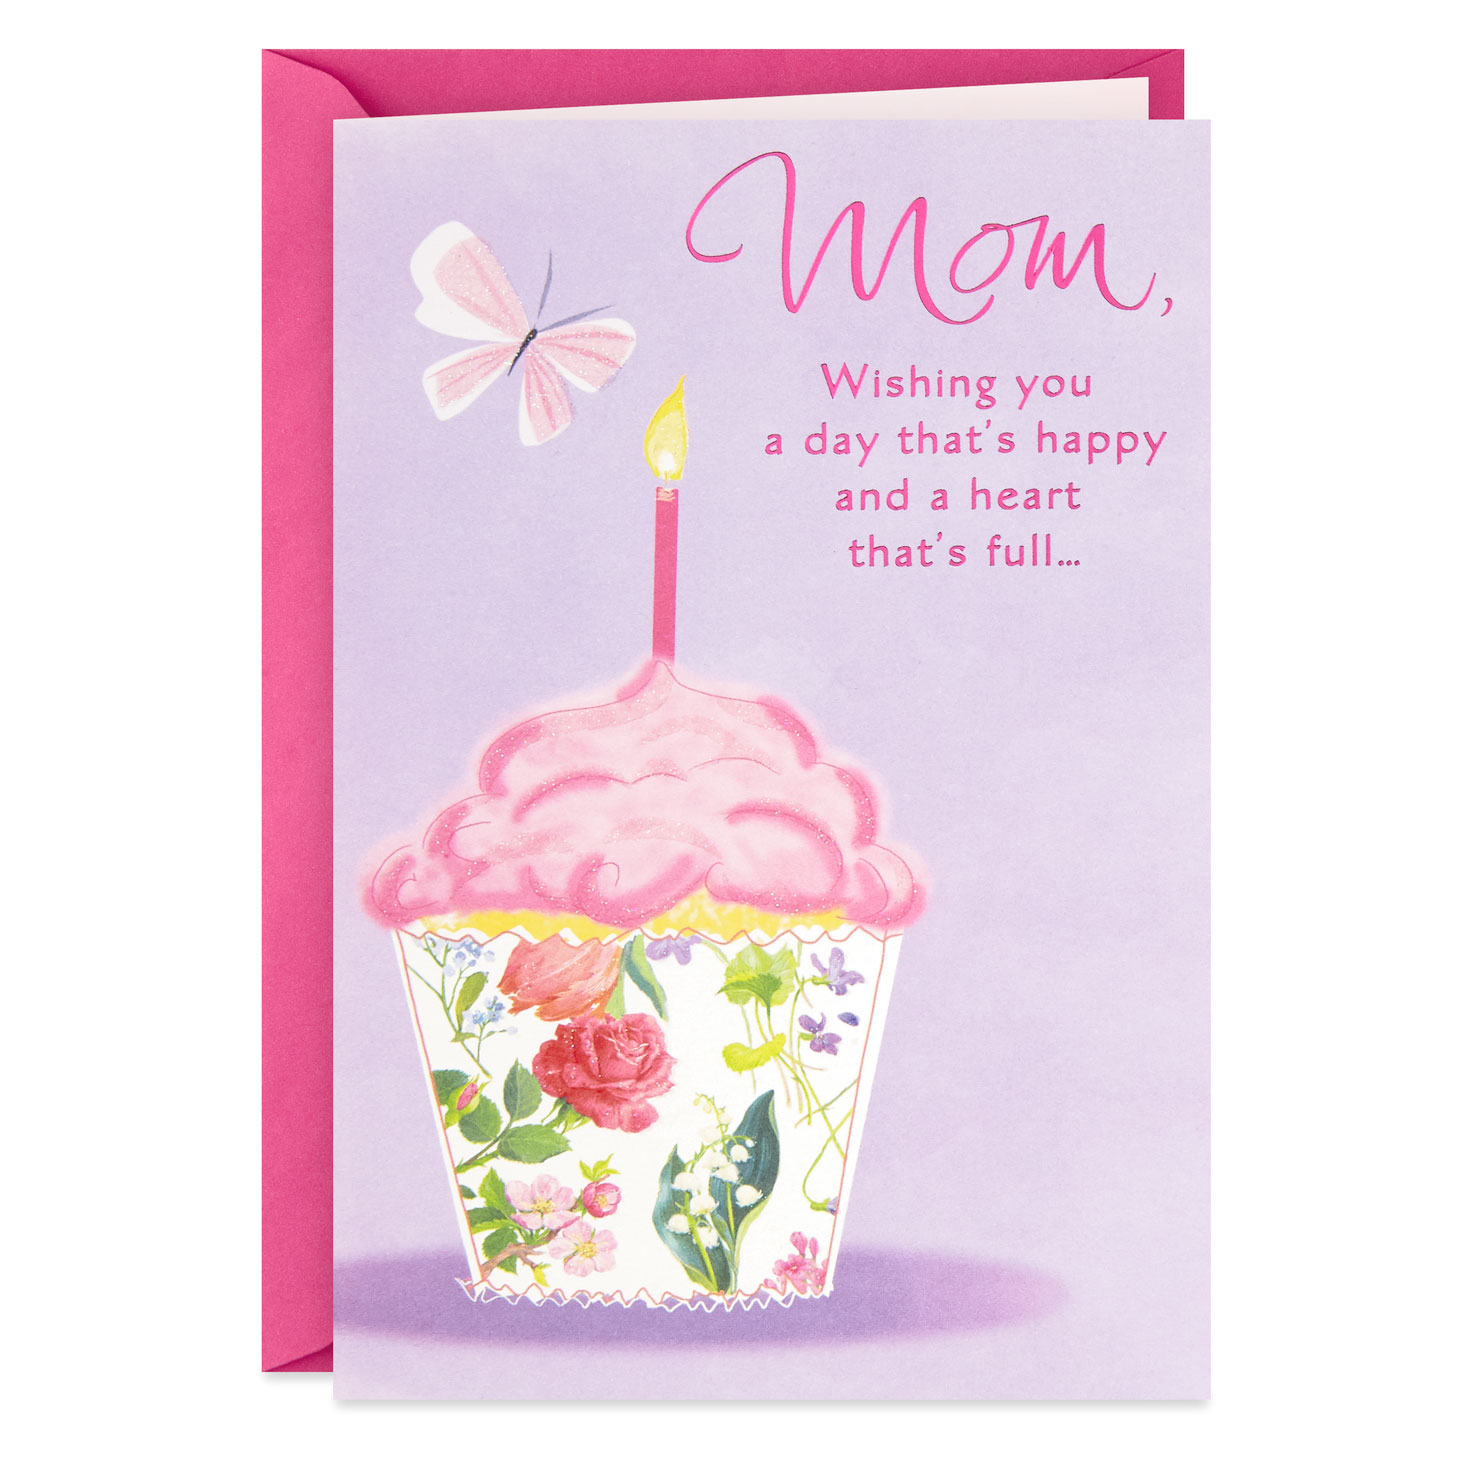 a happy day and a full heart birthday card for mom